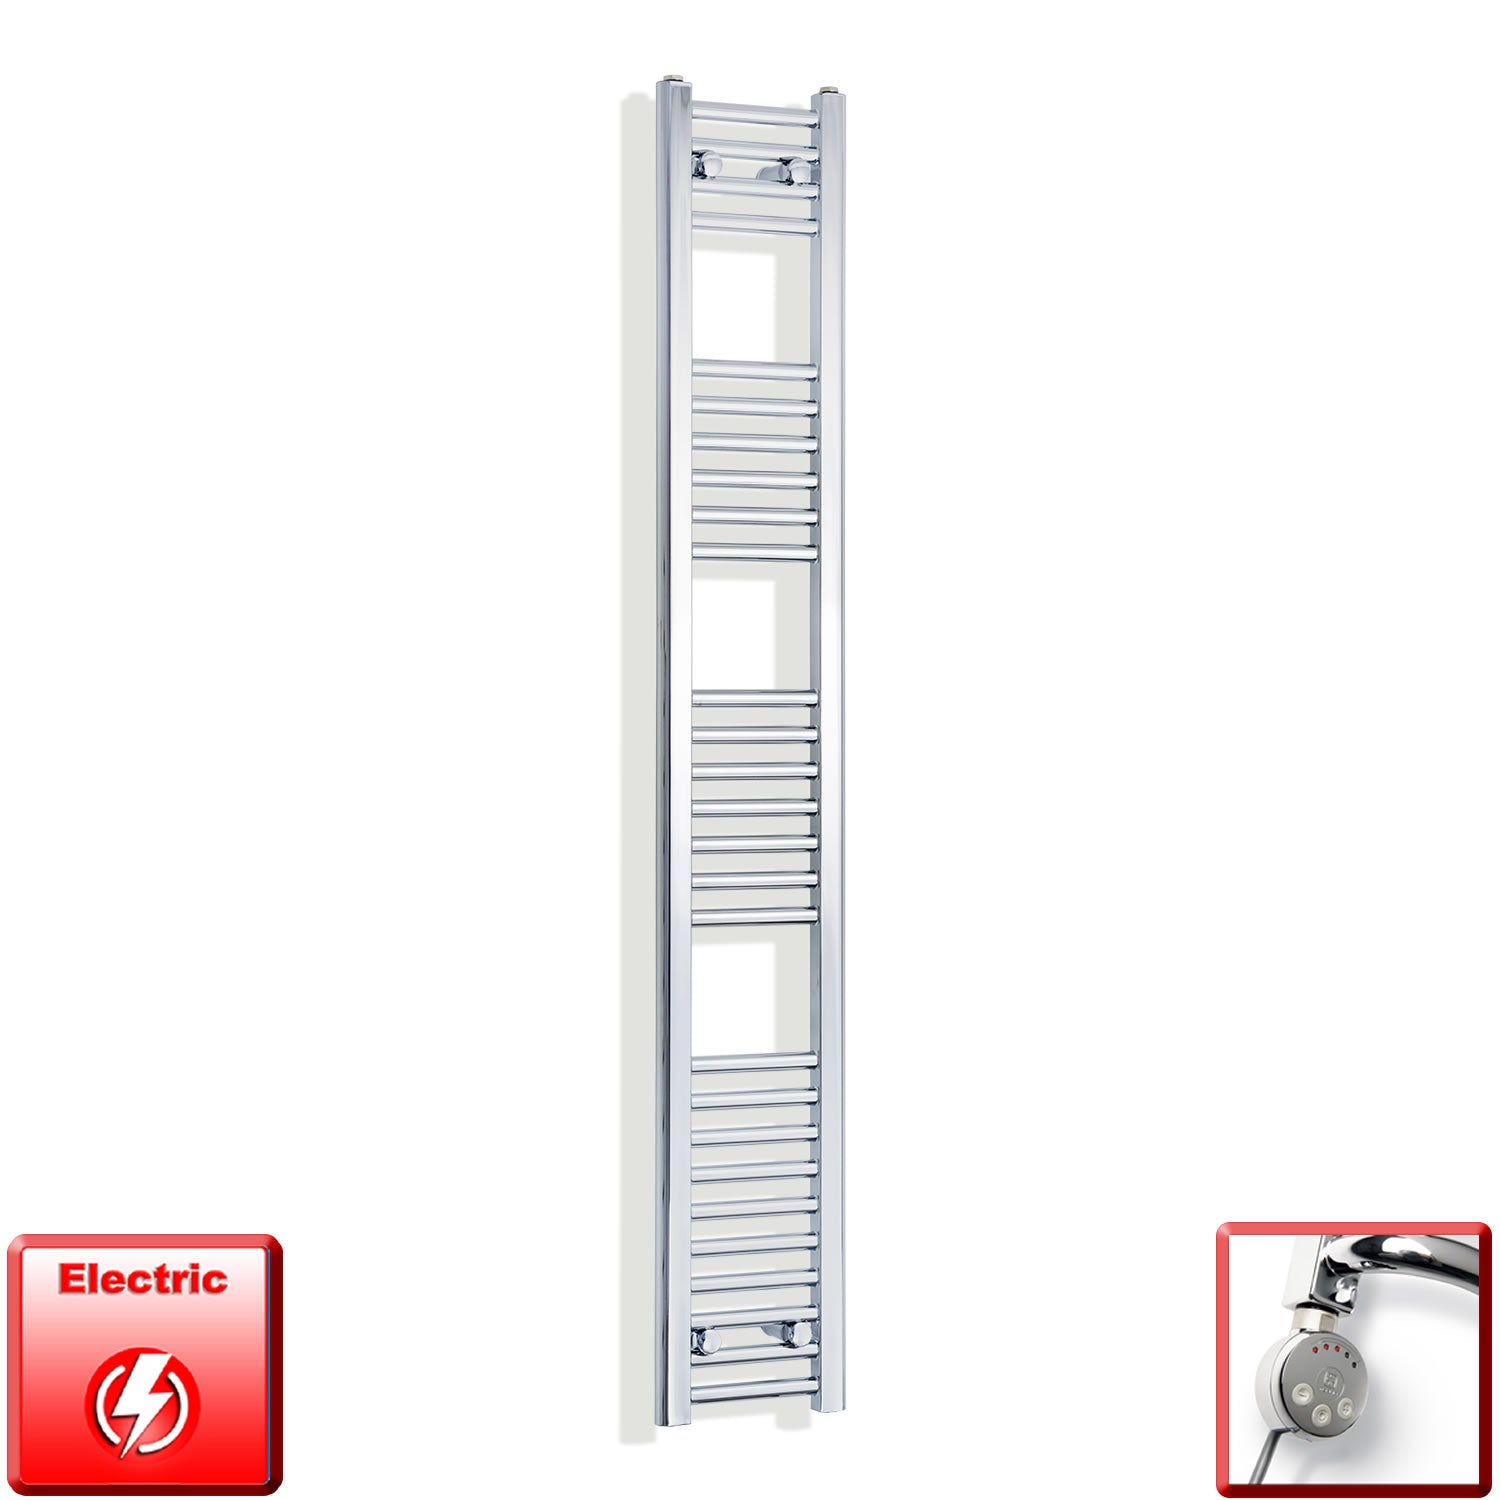 200mm Wide 1600mm High Flat Chrome Pre-Filled Electric Heated Towel Rail Radiator HTR,MEG Thermostatic Element